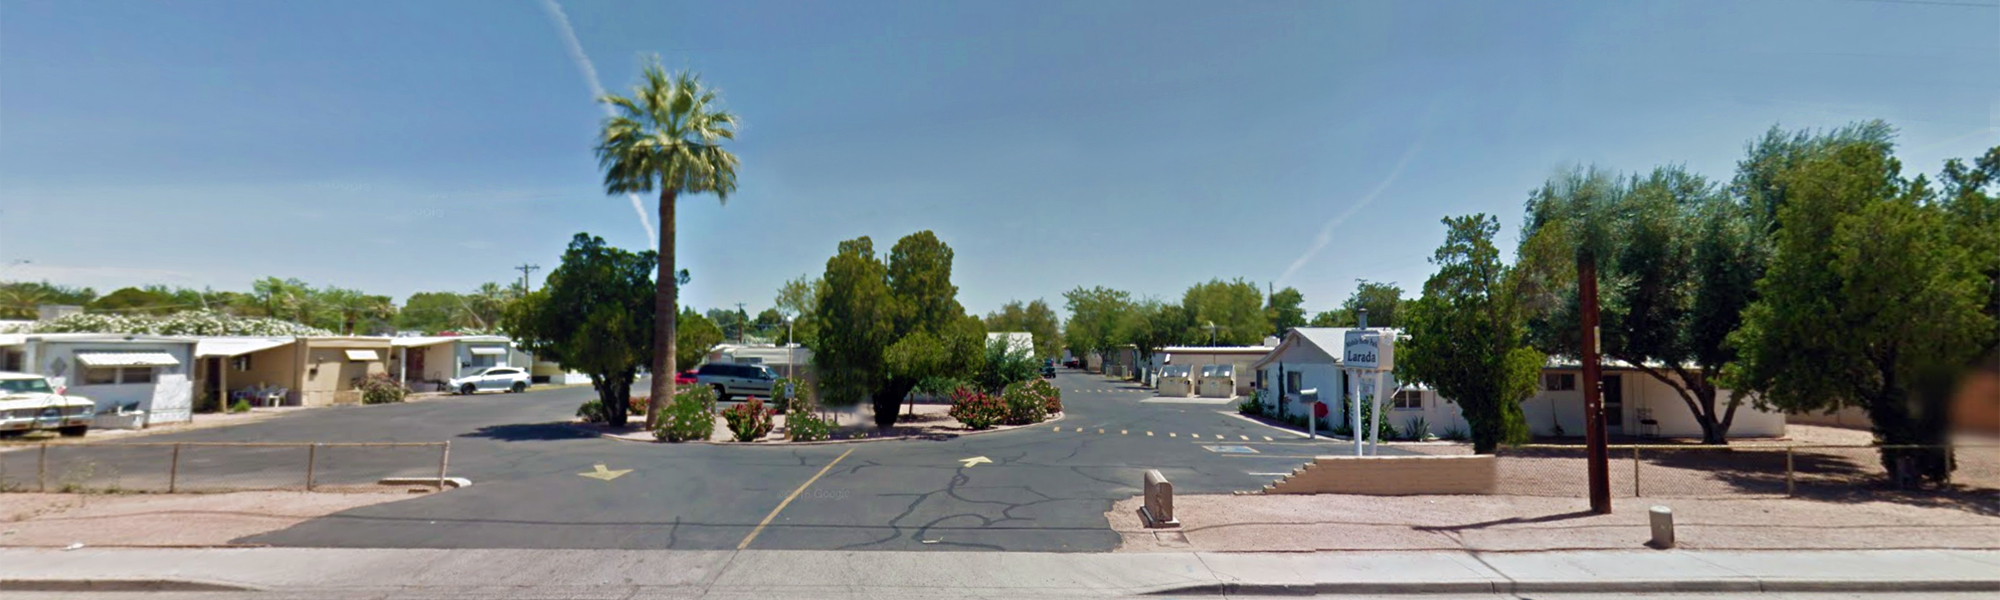 Larada Mobile Home park slider (imaeg)